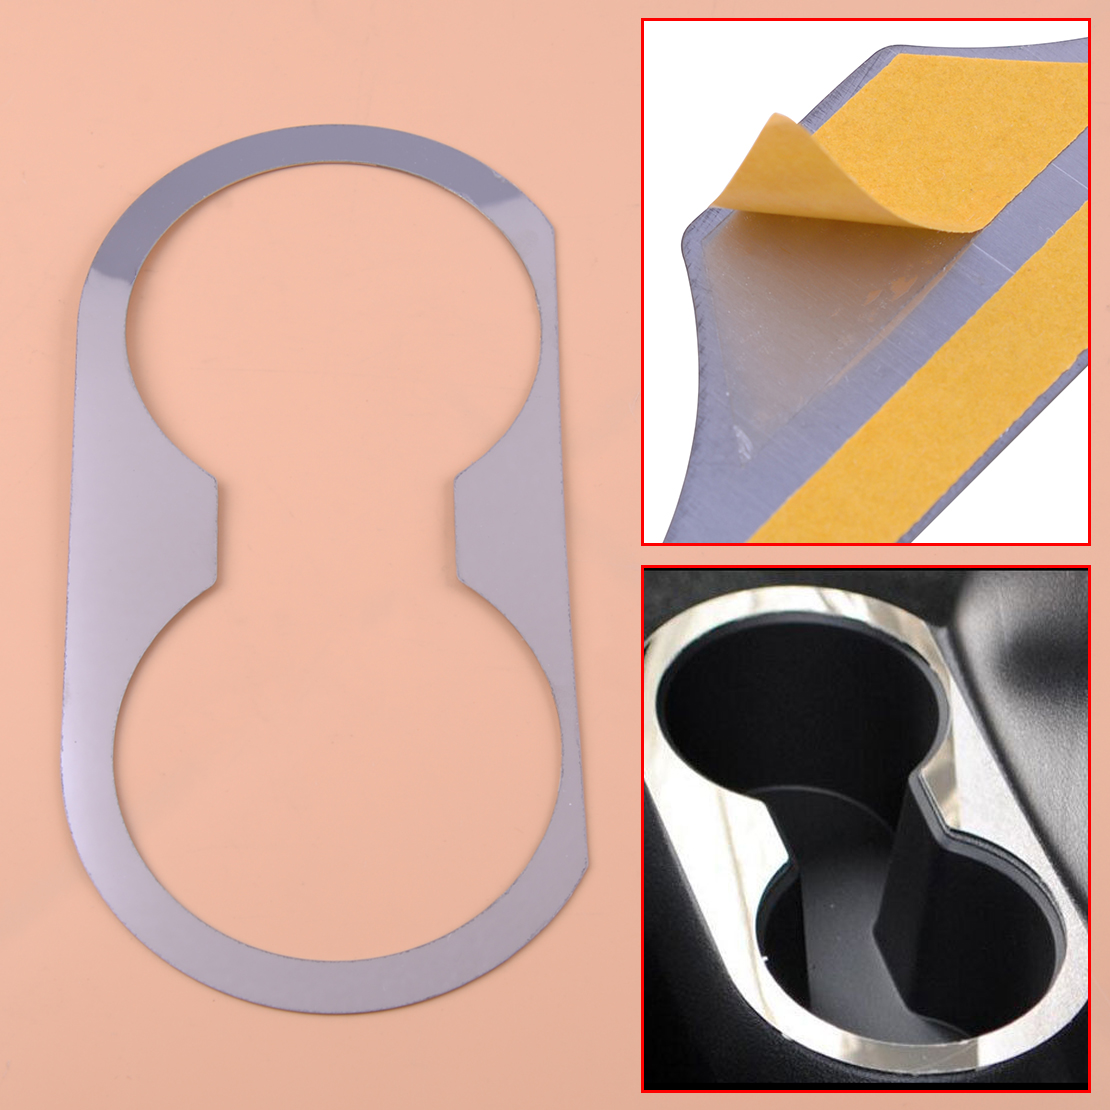 beler Car Rear Seat Water Cup Holder Plate Cover Trim Sticker Fit For <font><b>Jeep</b></font> Patriot <font><b>Compass</b></font> 2011 2012 2013 <font><b>2014</b></font> 2015 2016 image